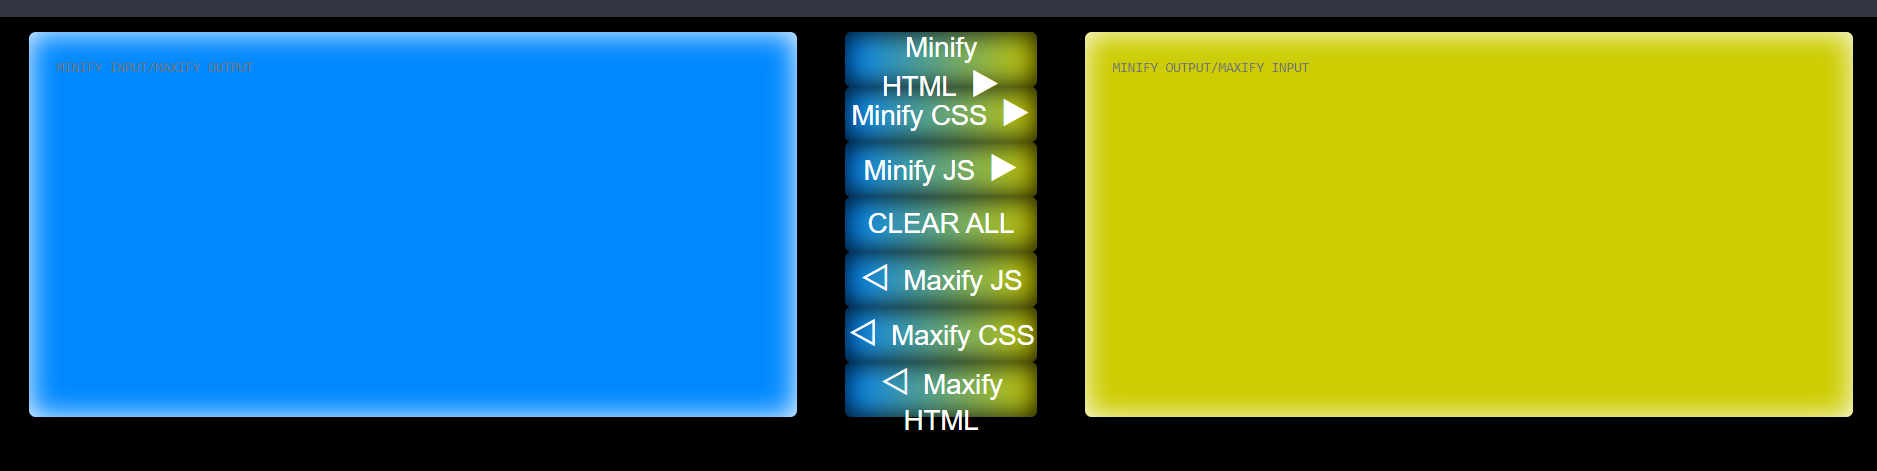 Build HTML,CSS,Javascript Code Compressor or Minifier Web App in Browser Using Vanilla Javascript Full Project For Beginners